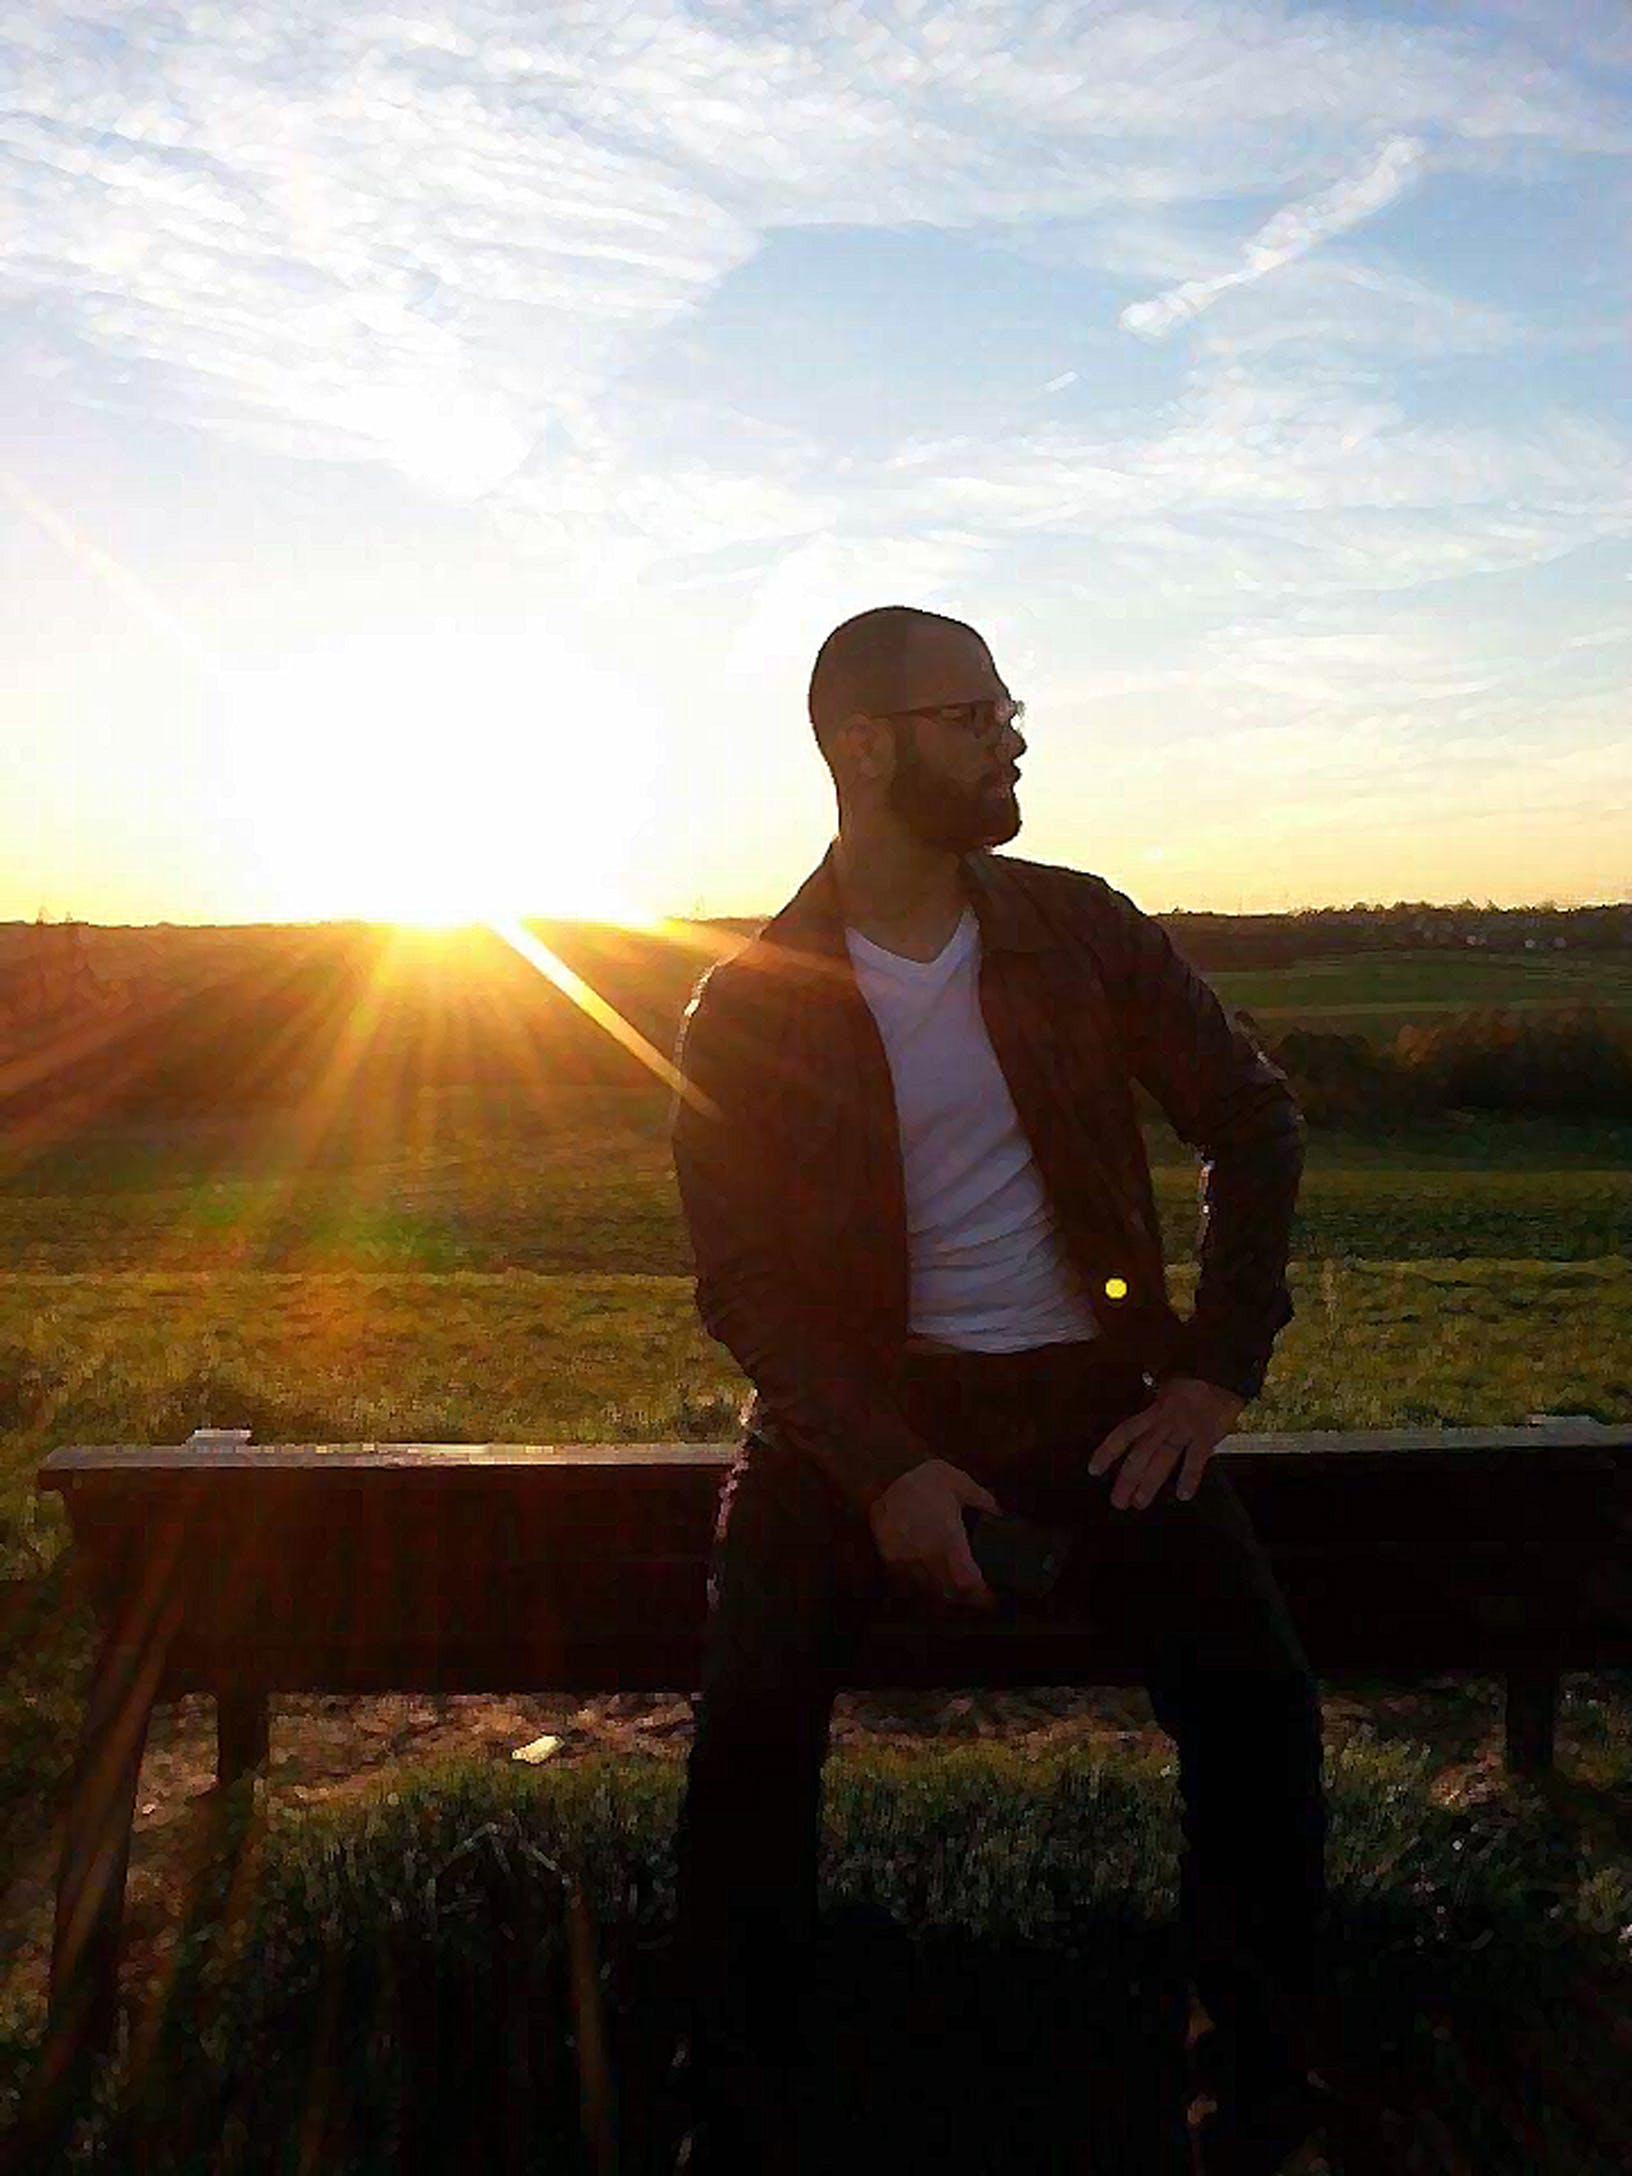 Man Sitting on Bench during Golden Hour Photography